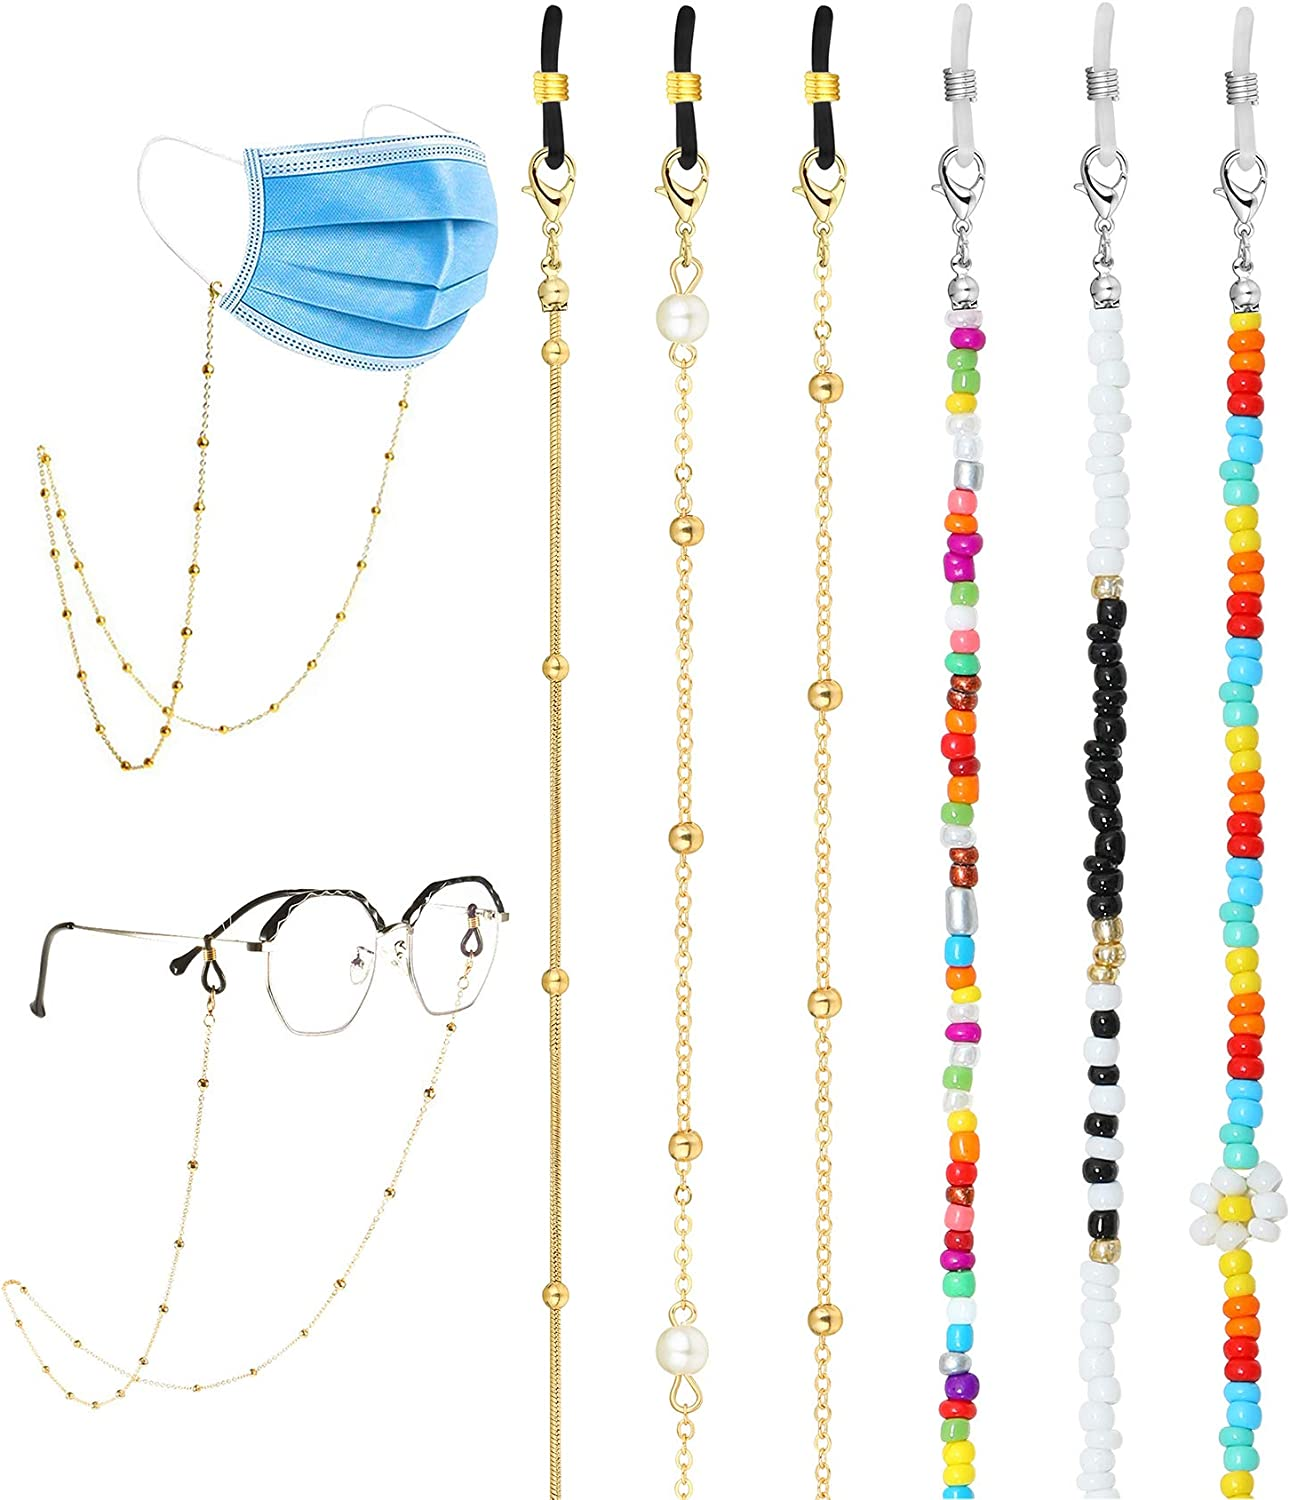 FUNEIA 4-6 Pcs Mask Chain Eyeglass Chain Lanyard for Women Men Mask Lanyard Eyeglass Holder Chain Strap Gold Link Necklace Around Neck Eyeglass Chain Retainer Hanger Keeper Accessory